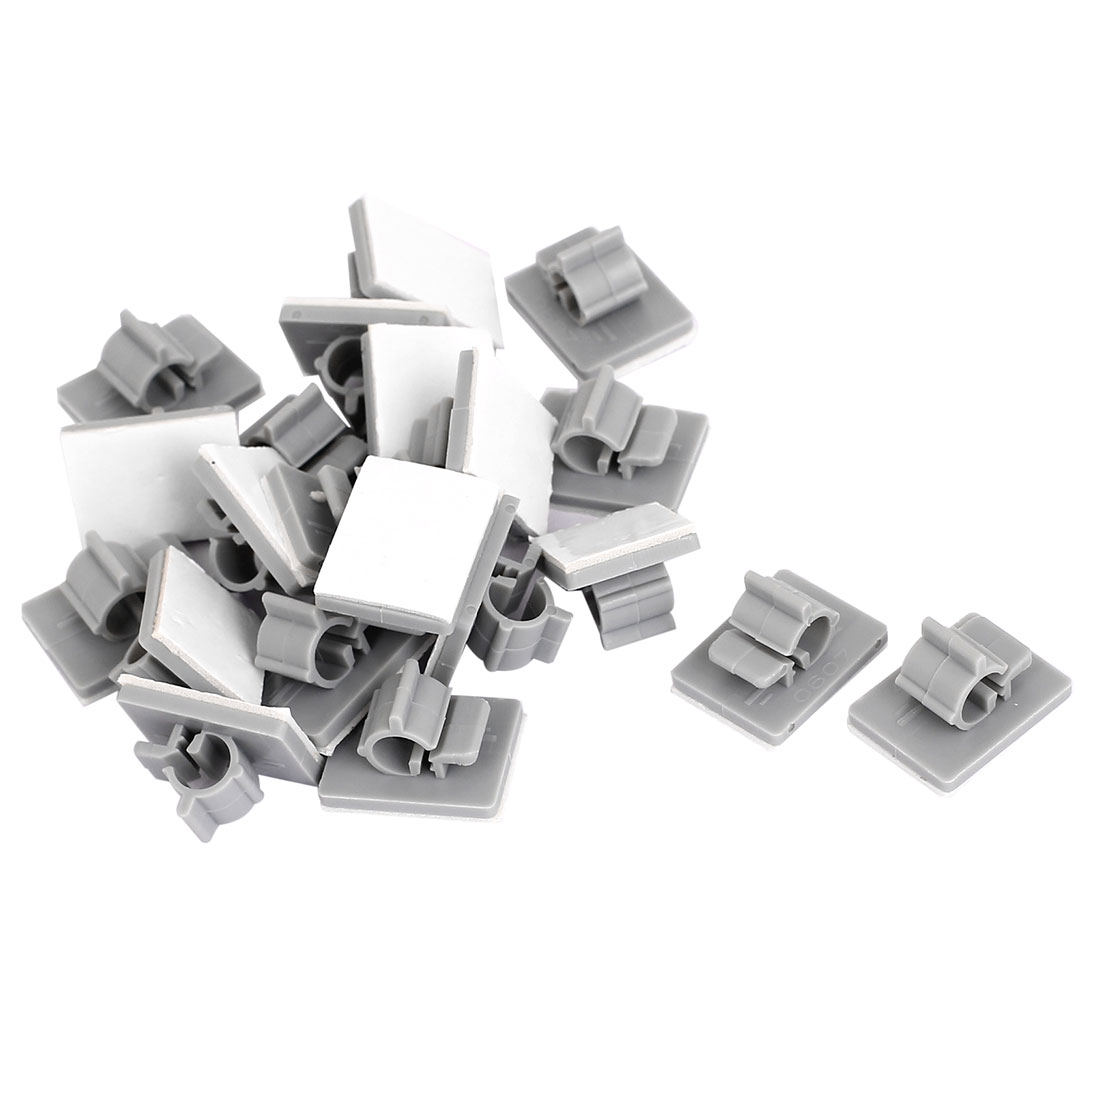 22 Pcs Gray Adhesive Backed Cord  Management Clips Clamps for 6-7mm Cable